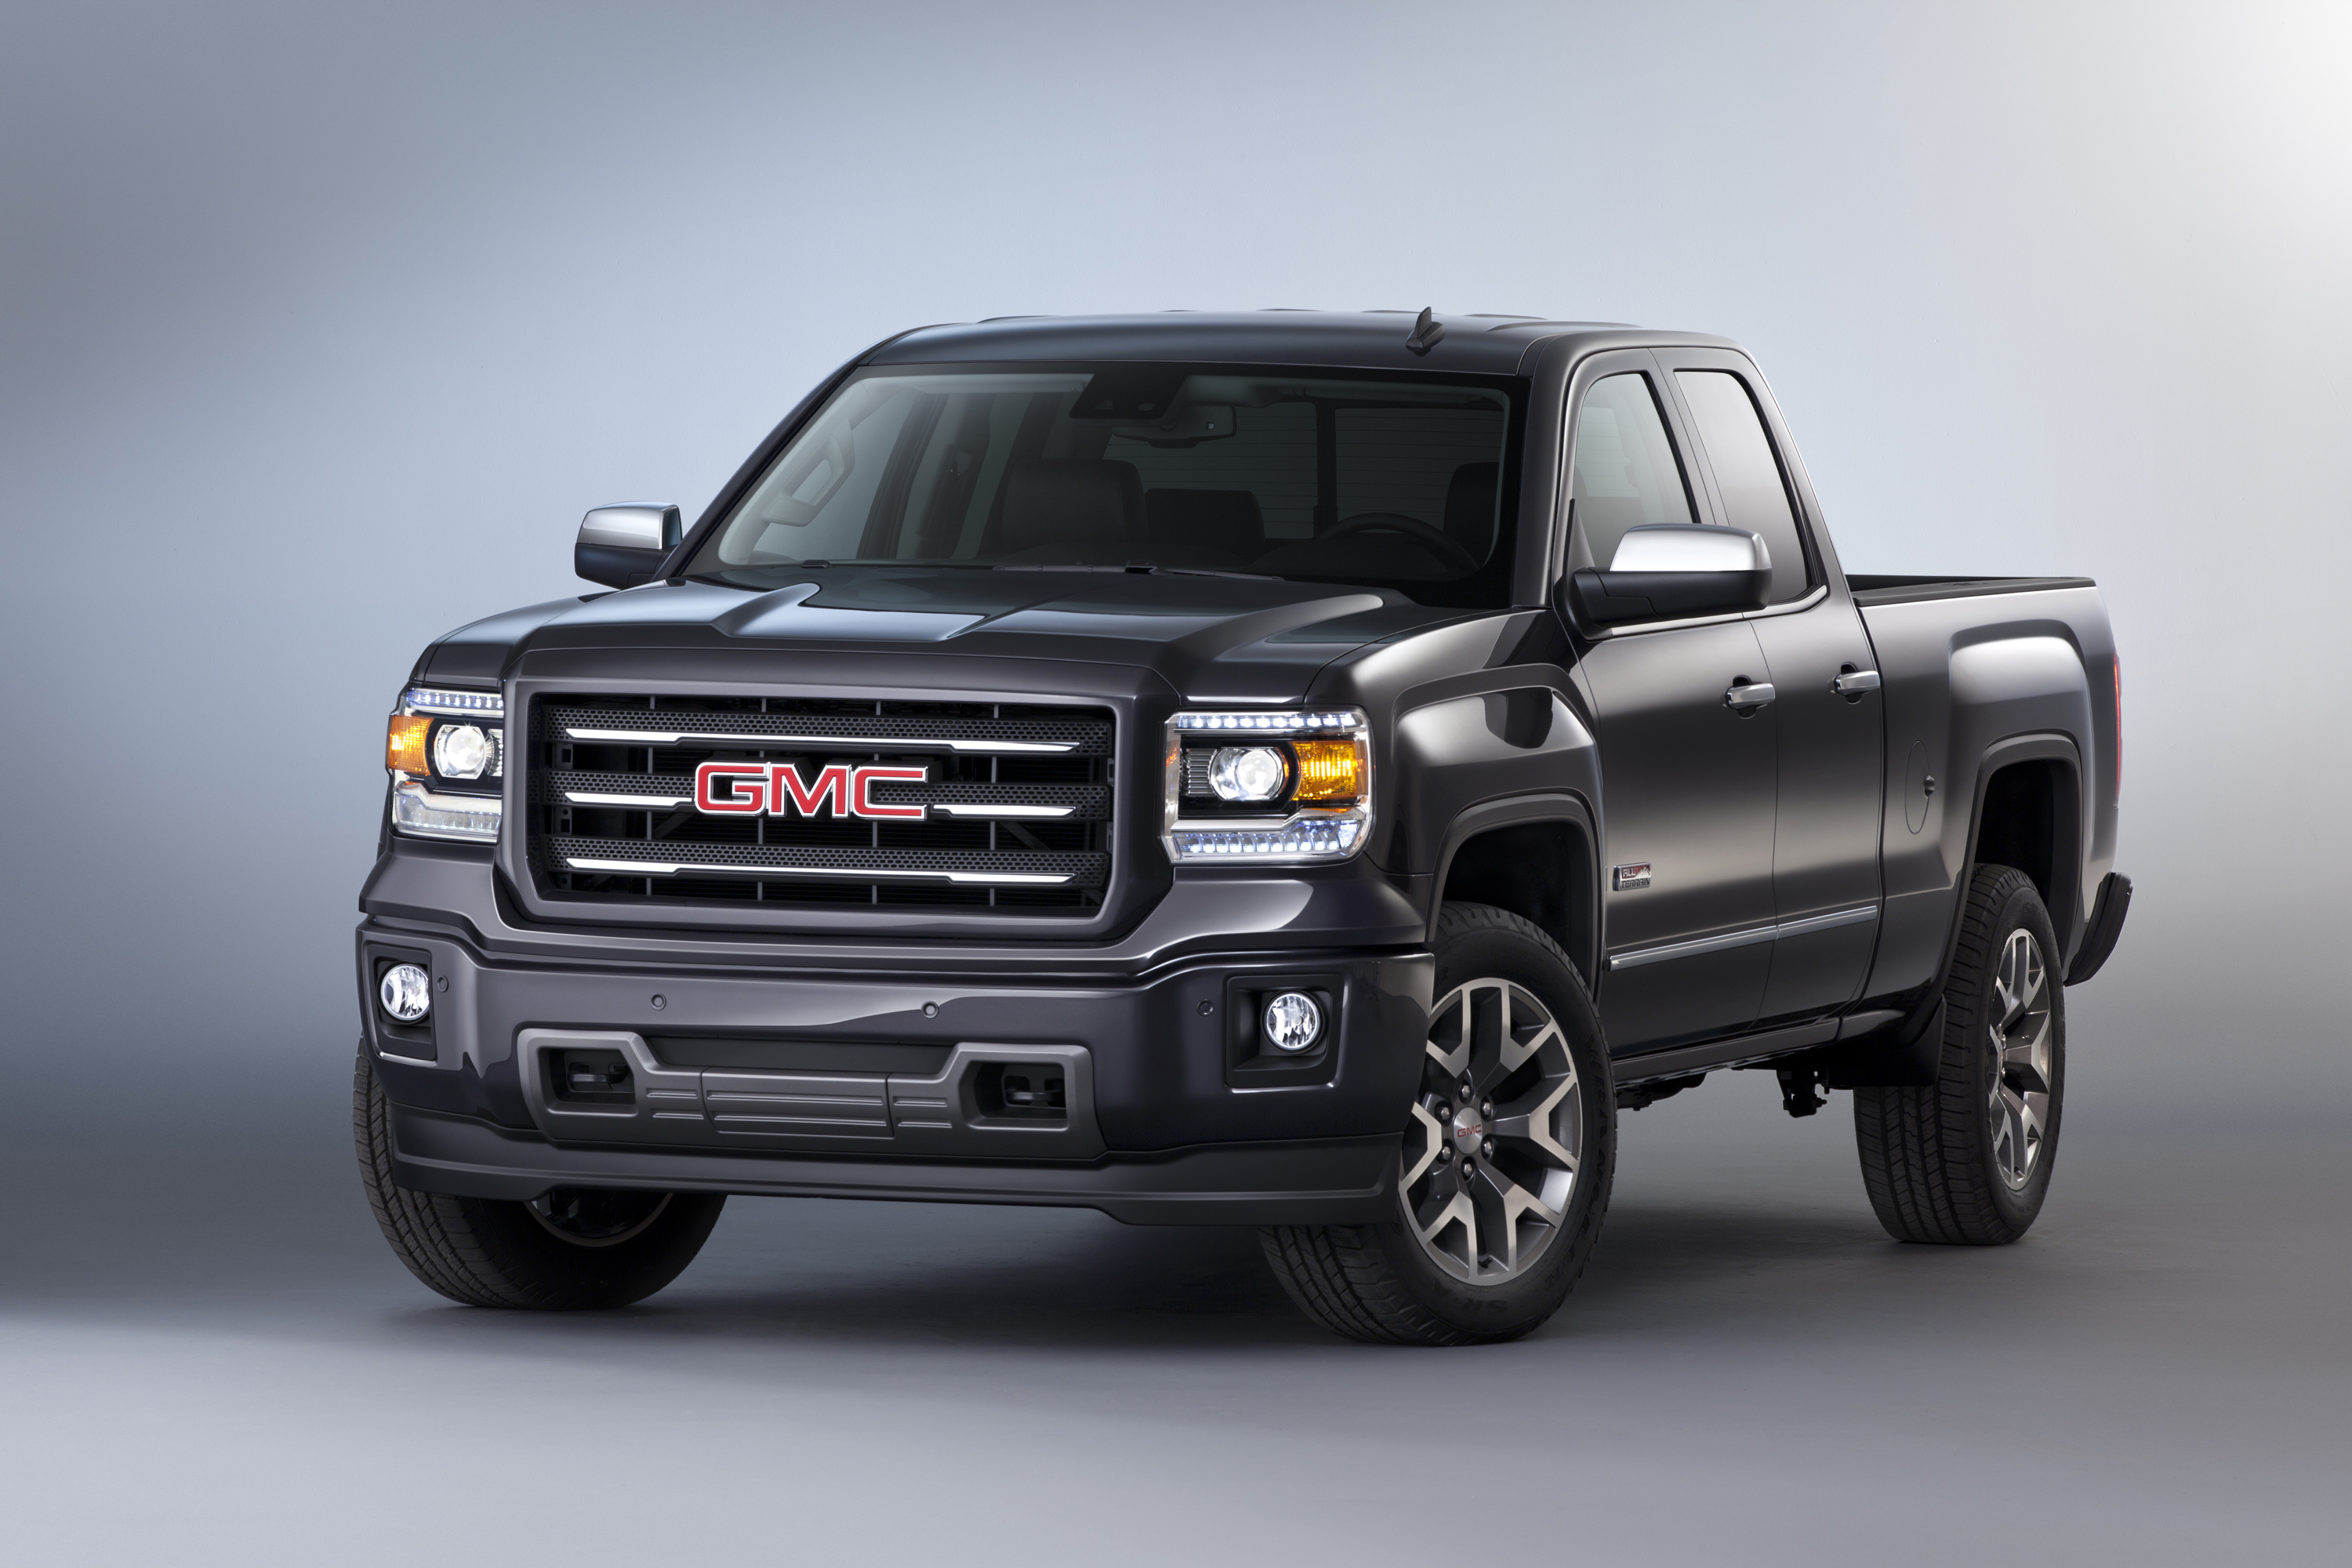 2014 gmc sierra all terrain extended cab front three quarter in road reality. Black Bedroom Furniture Sets. Home Design Ideas